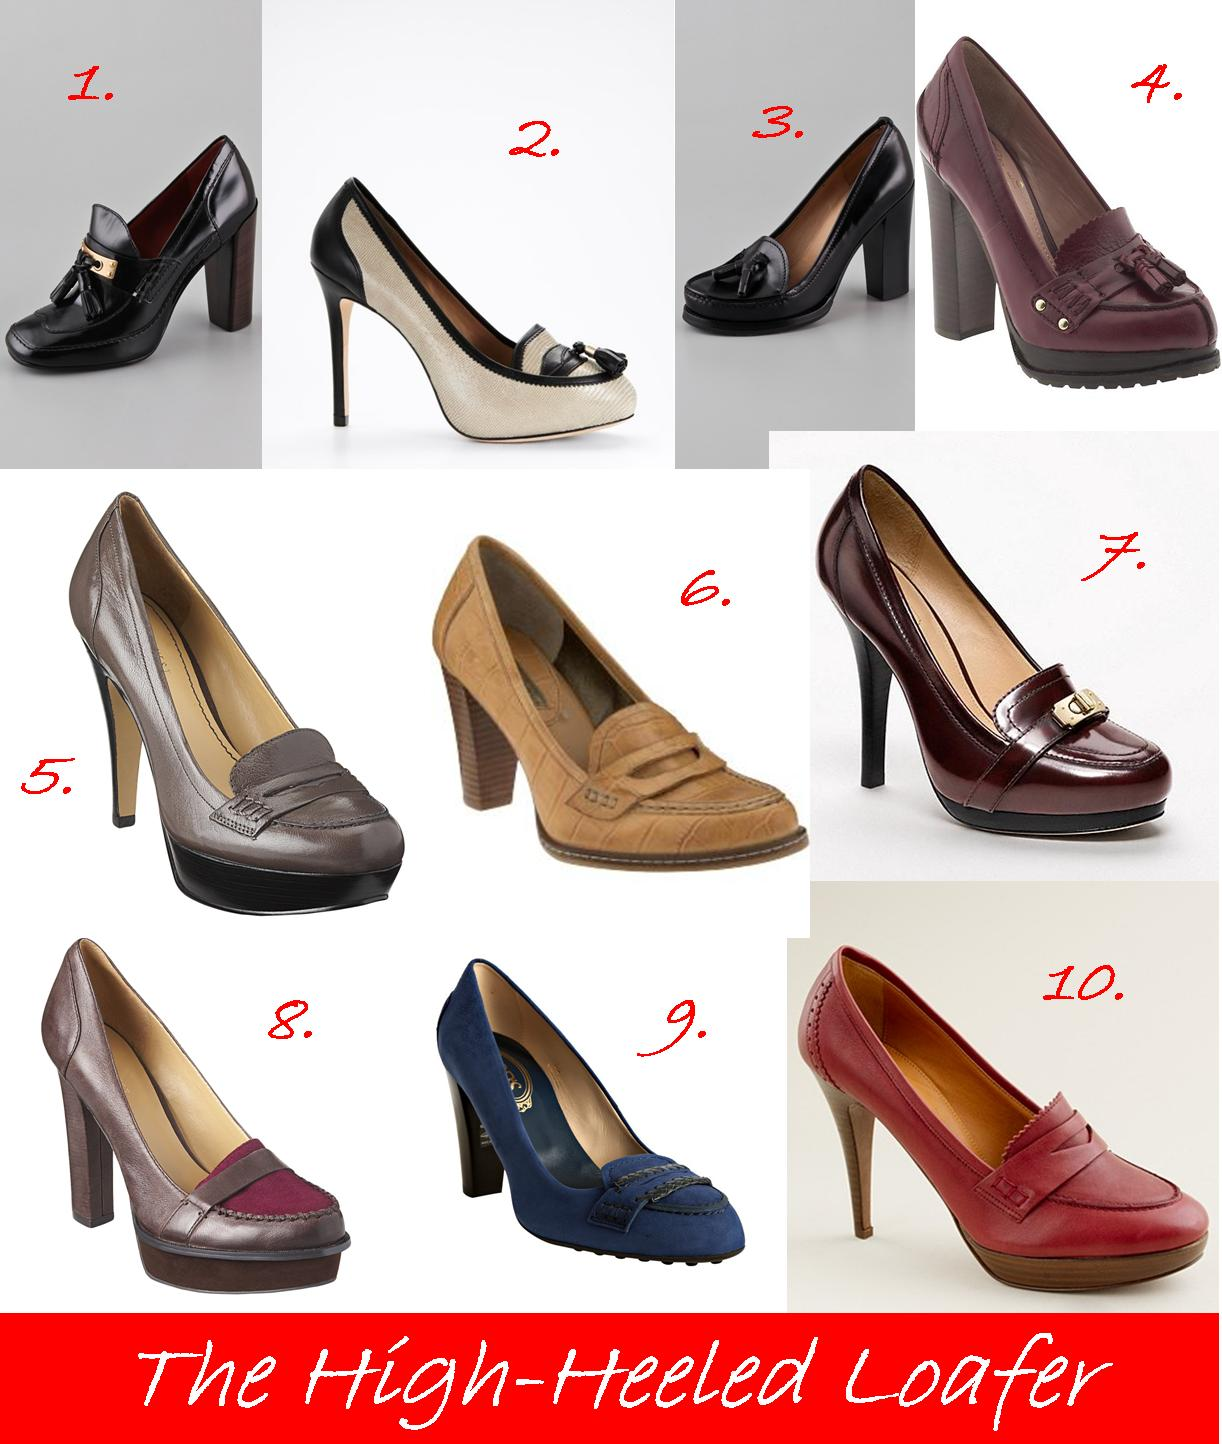 180d7f37ba7 Here are my top 10 high heel loafers for this week s Fresh Picks to Follow.  Do you have any high heeled loafers  Let me know what you think!